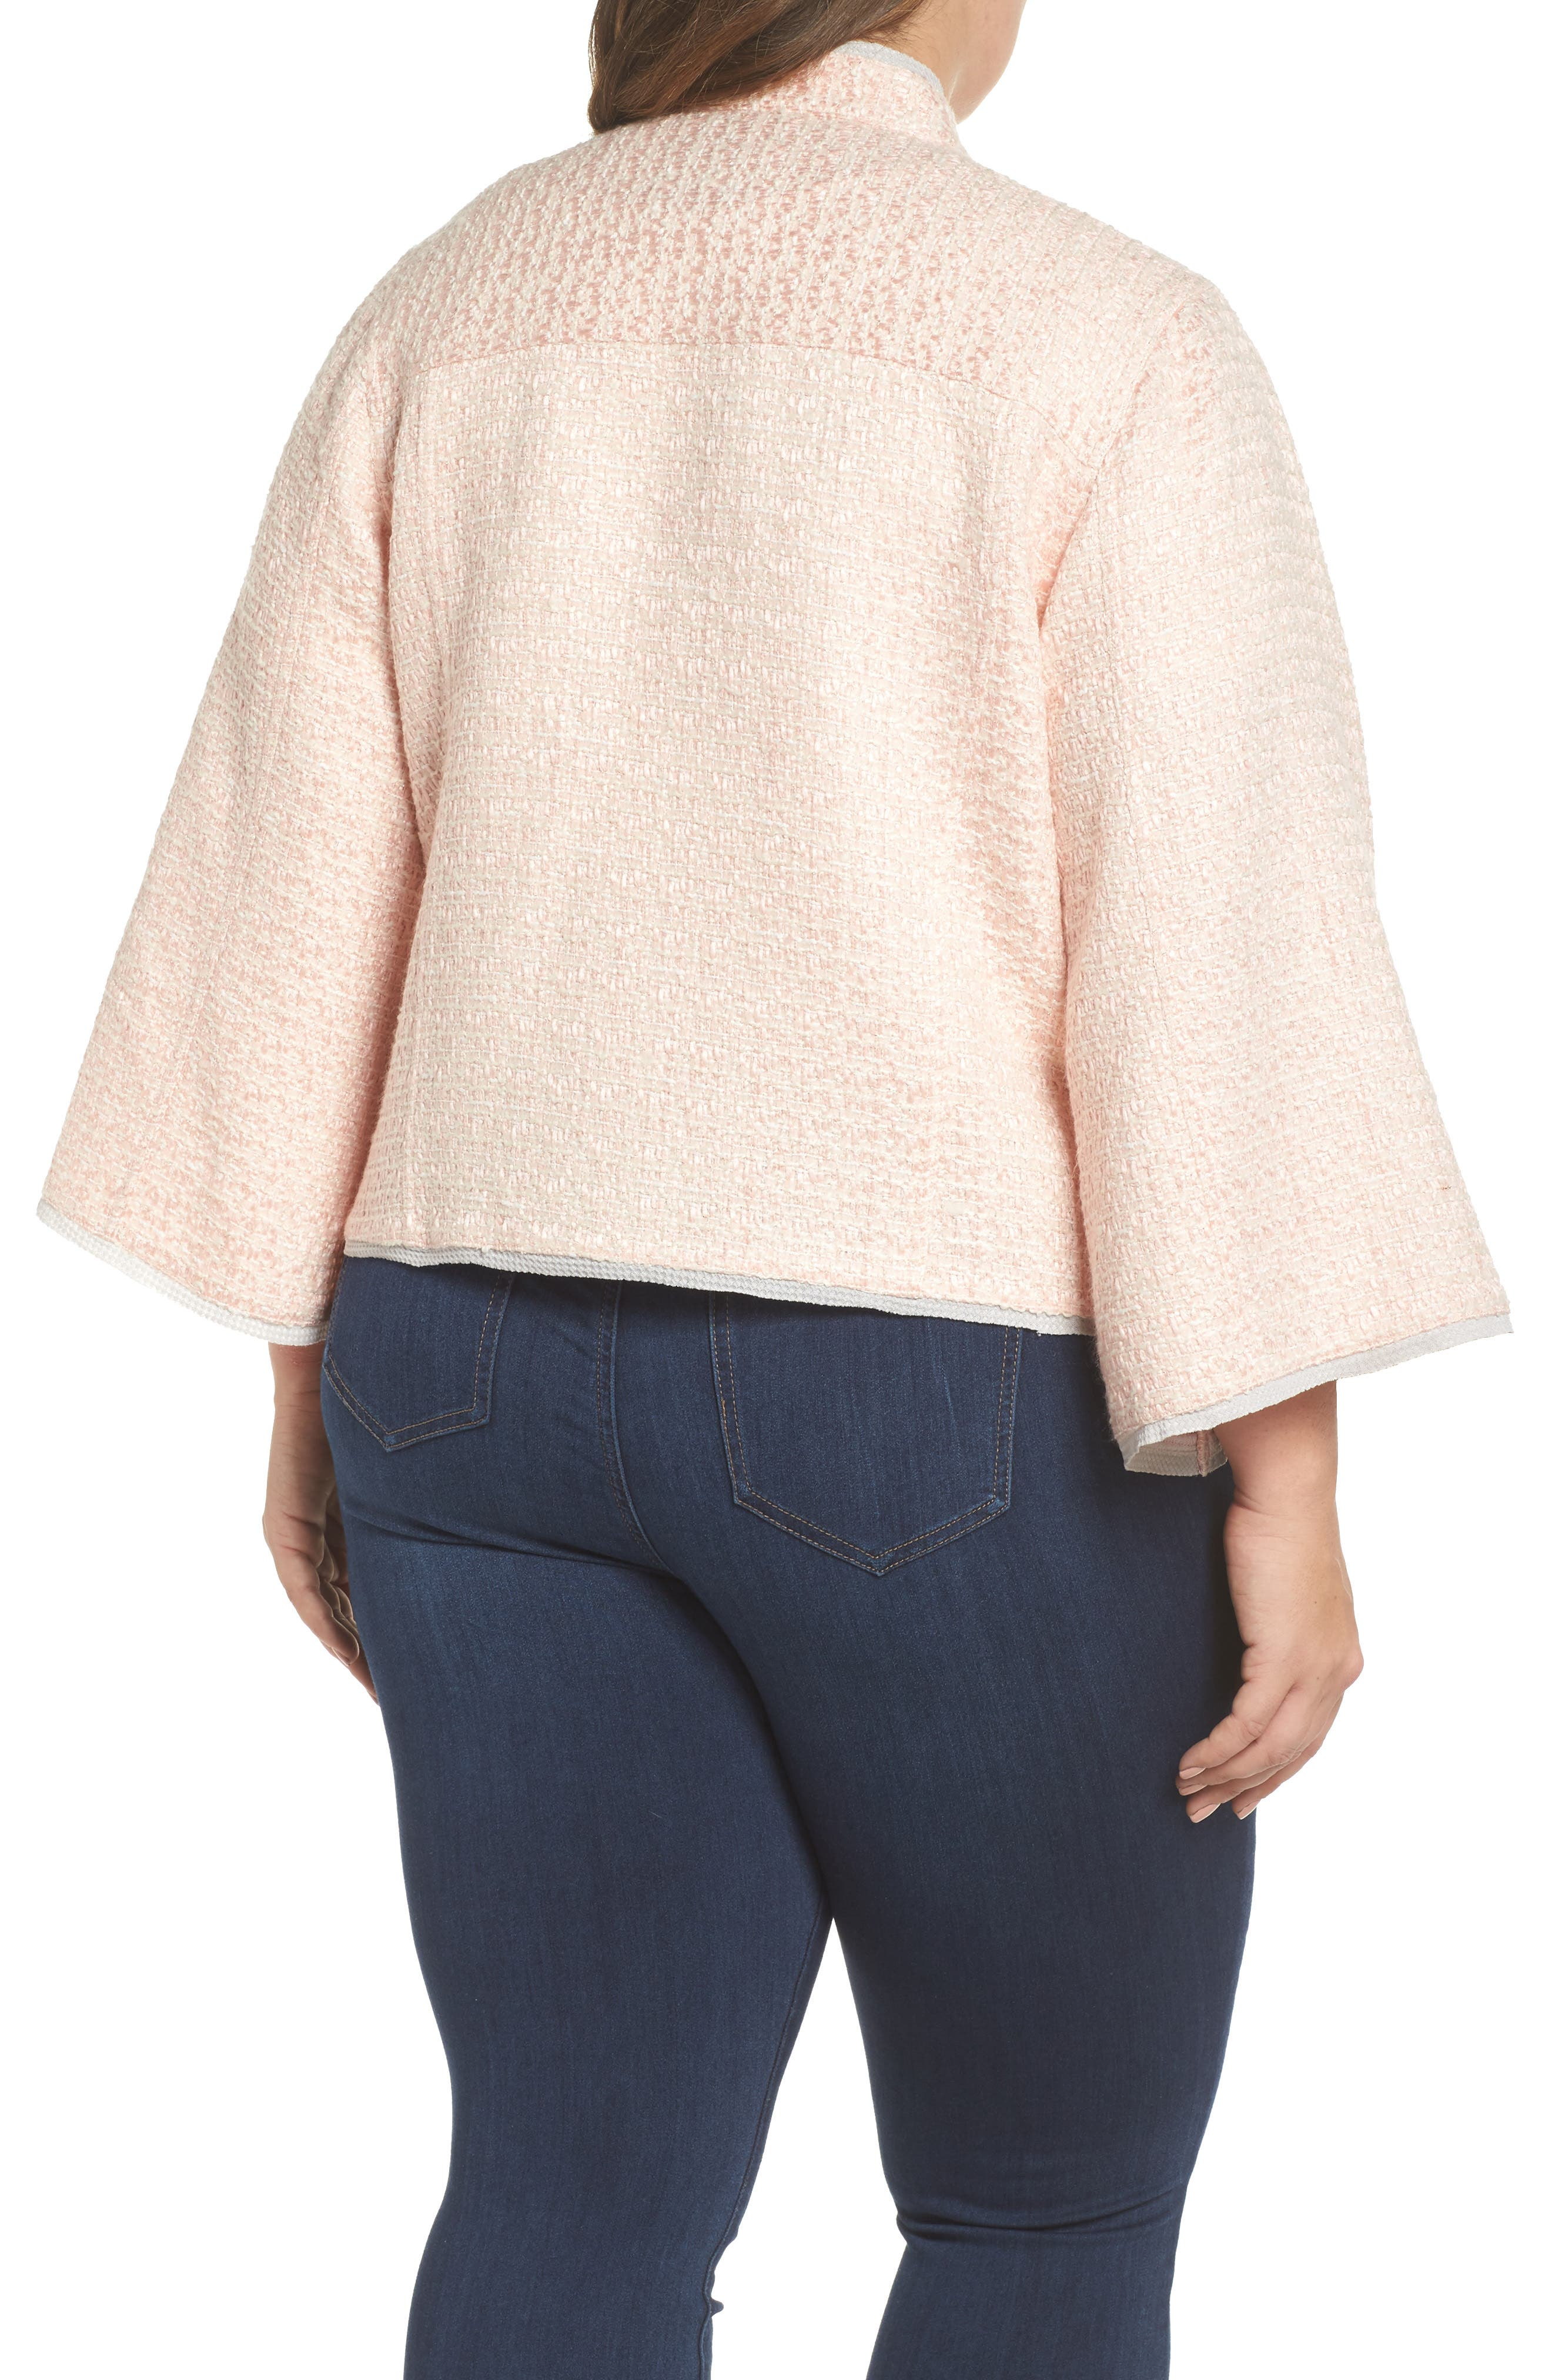 Bell Sleeve Crop Tweed Jacket,                             Alternate thumbnail 2, color,                             Ice Pink Combo